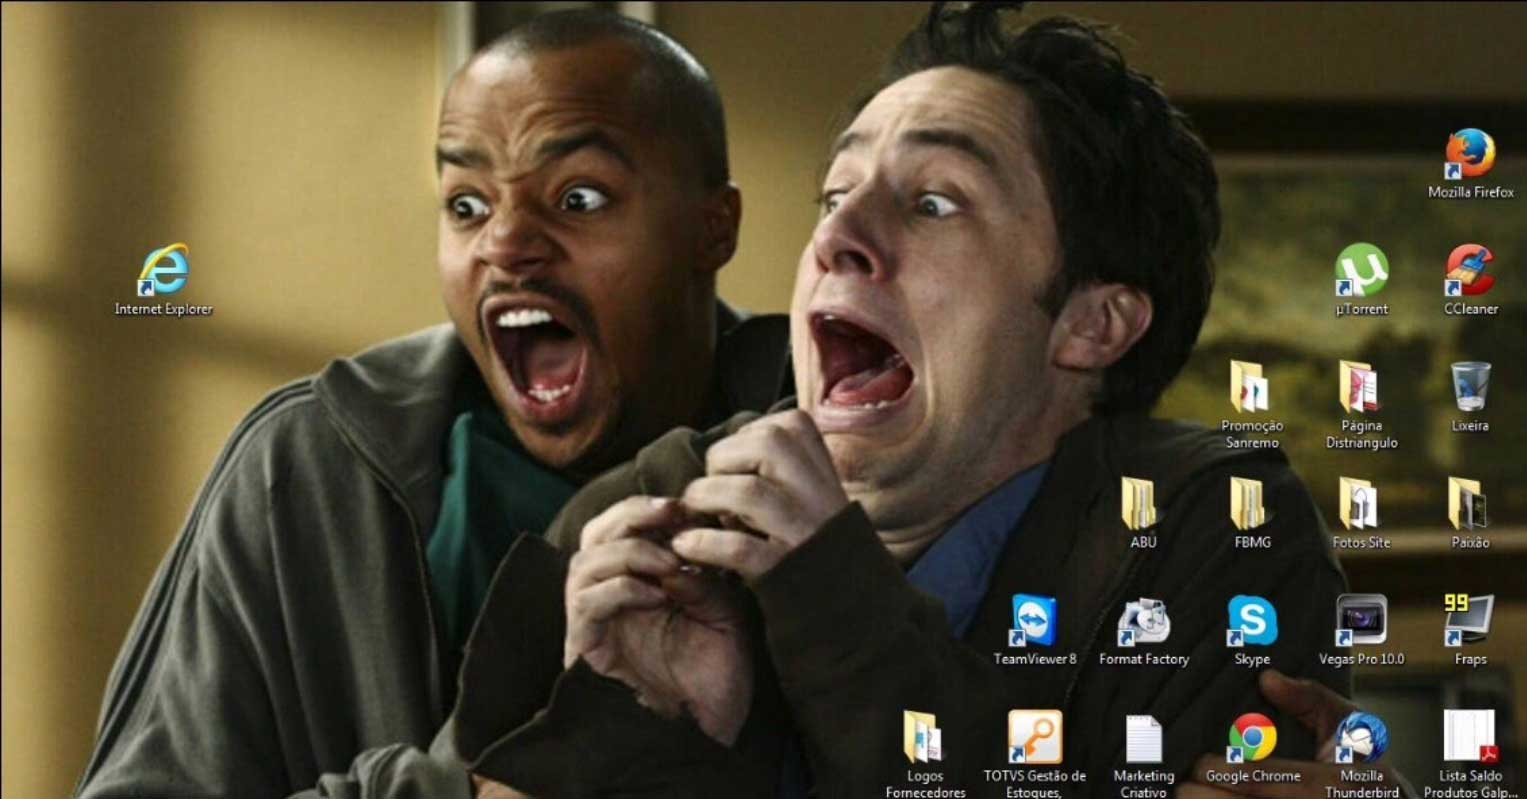 21 Desktop Backgrounds That Are Crushing It